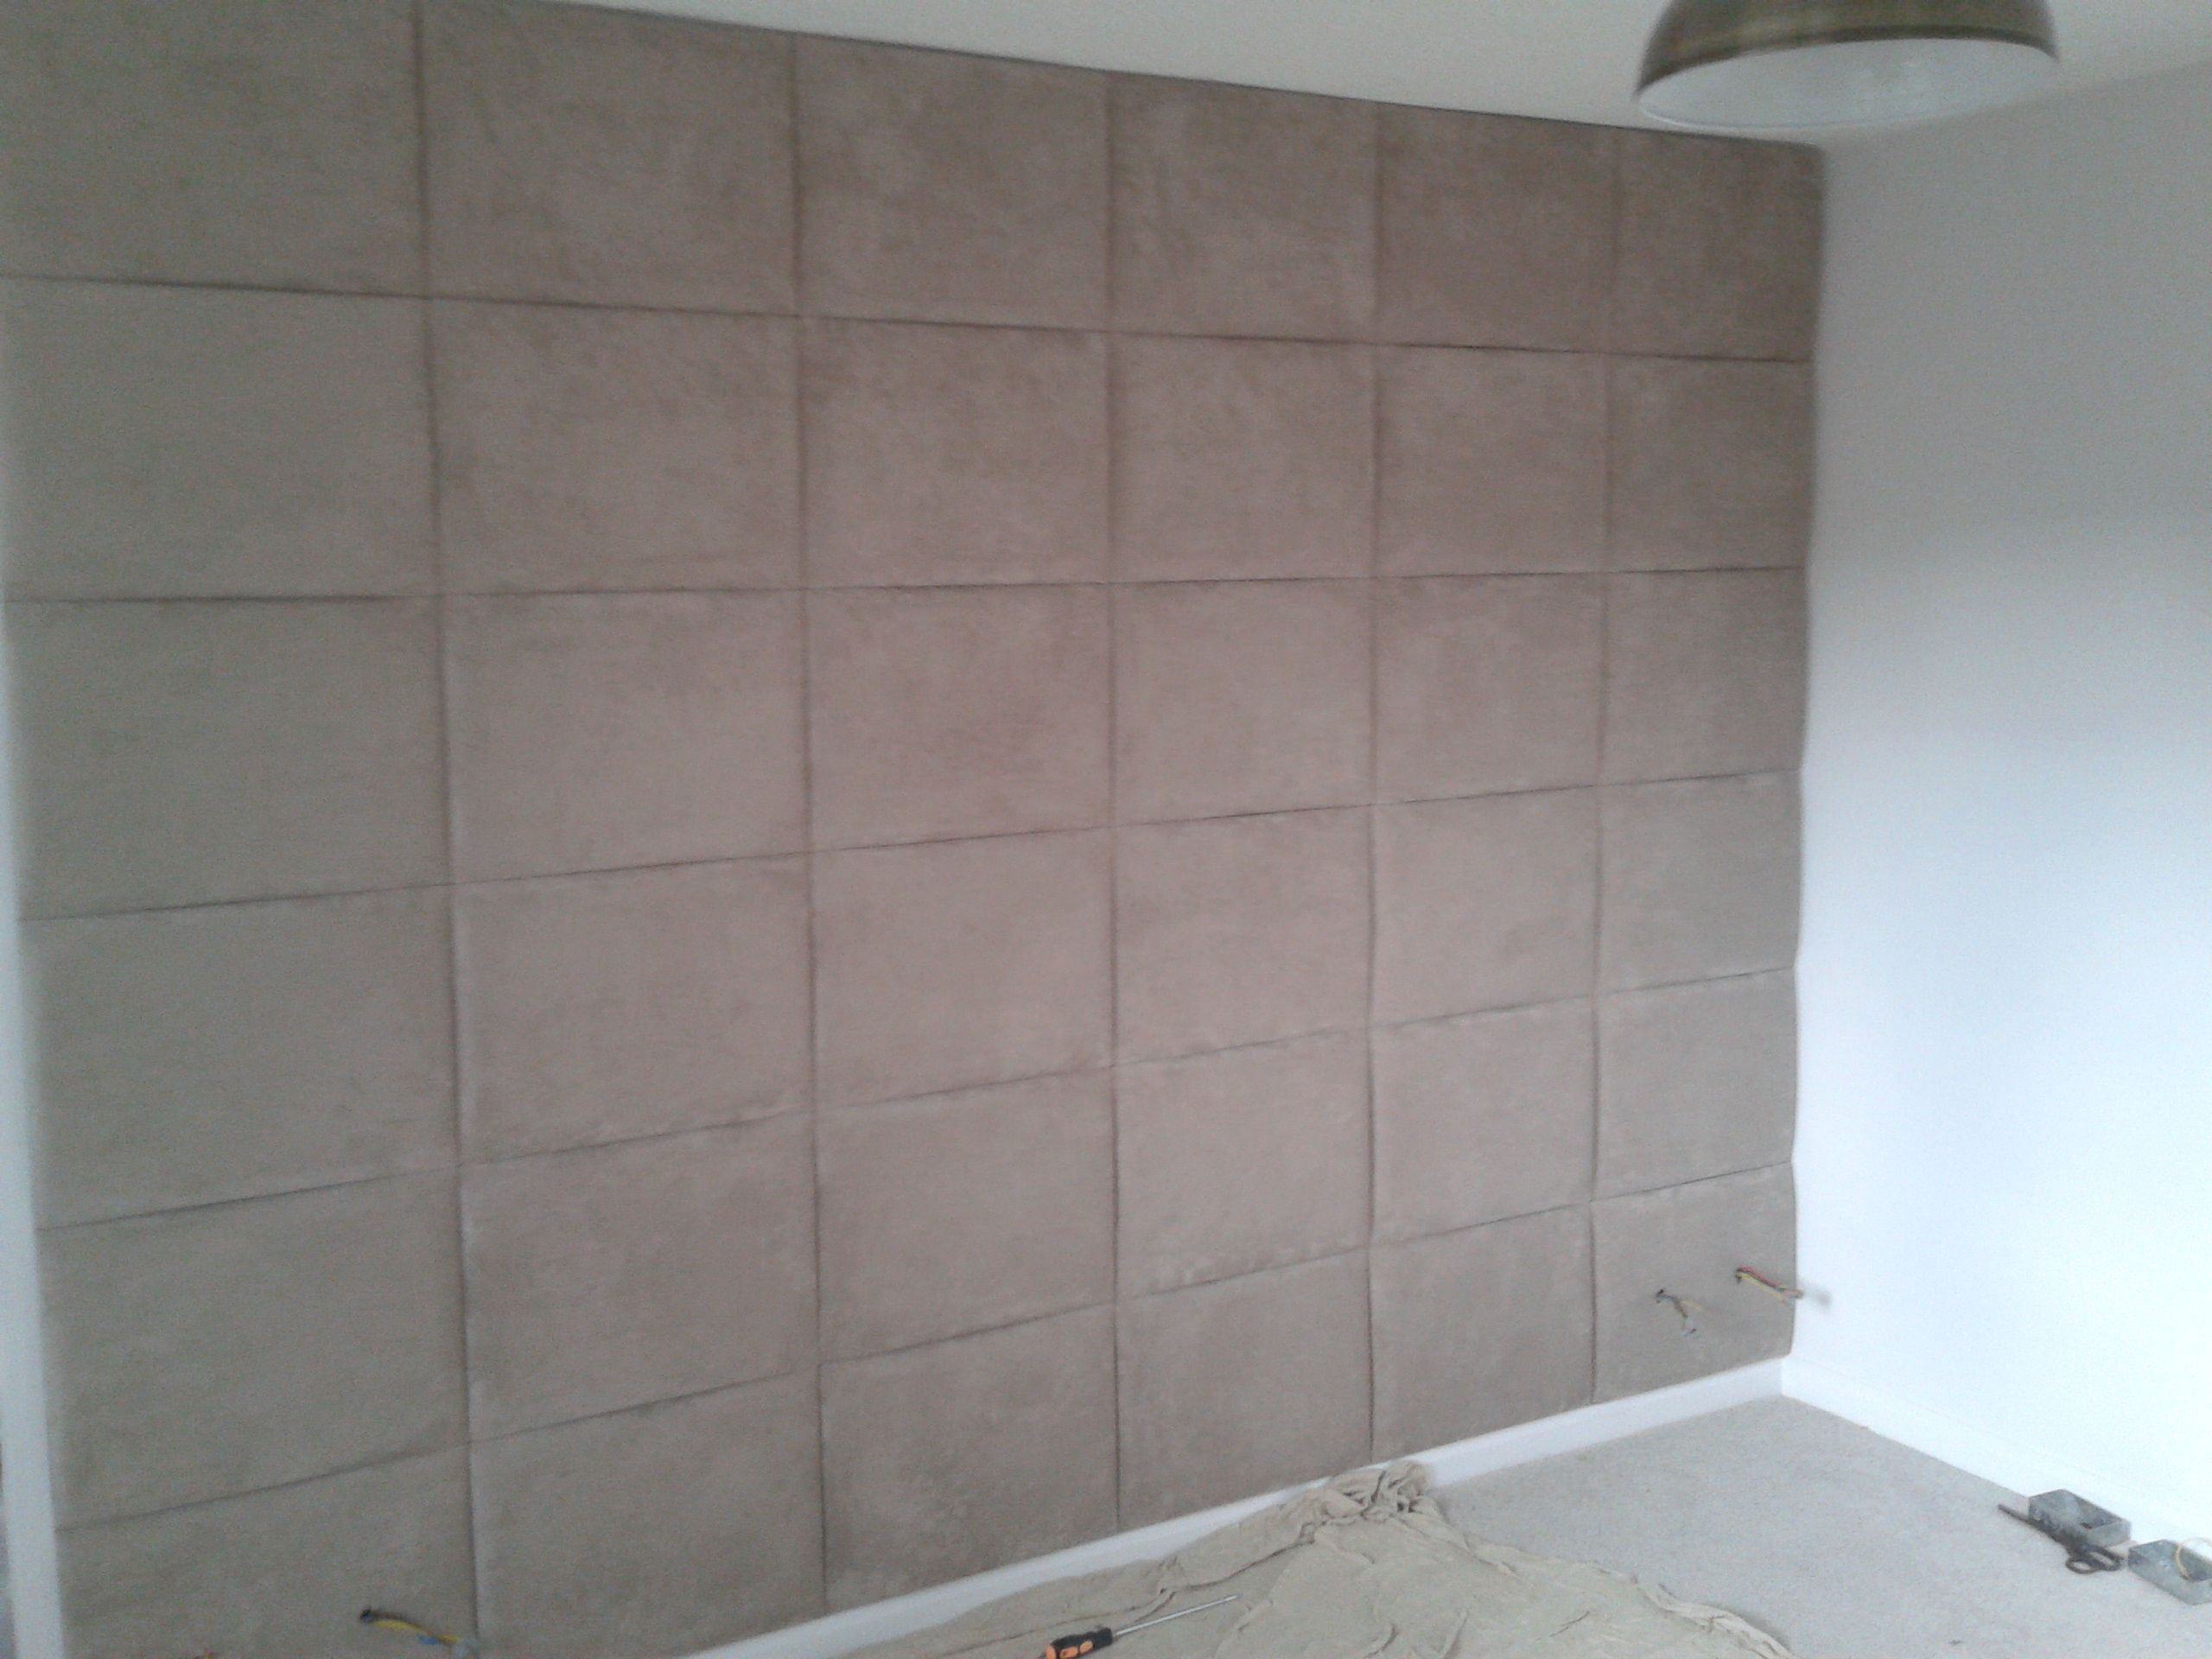 Harmony Chenille Stone Upholstered Walls Padded Wall Wall Tiles